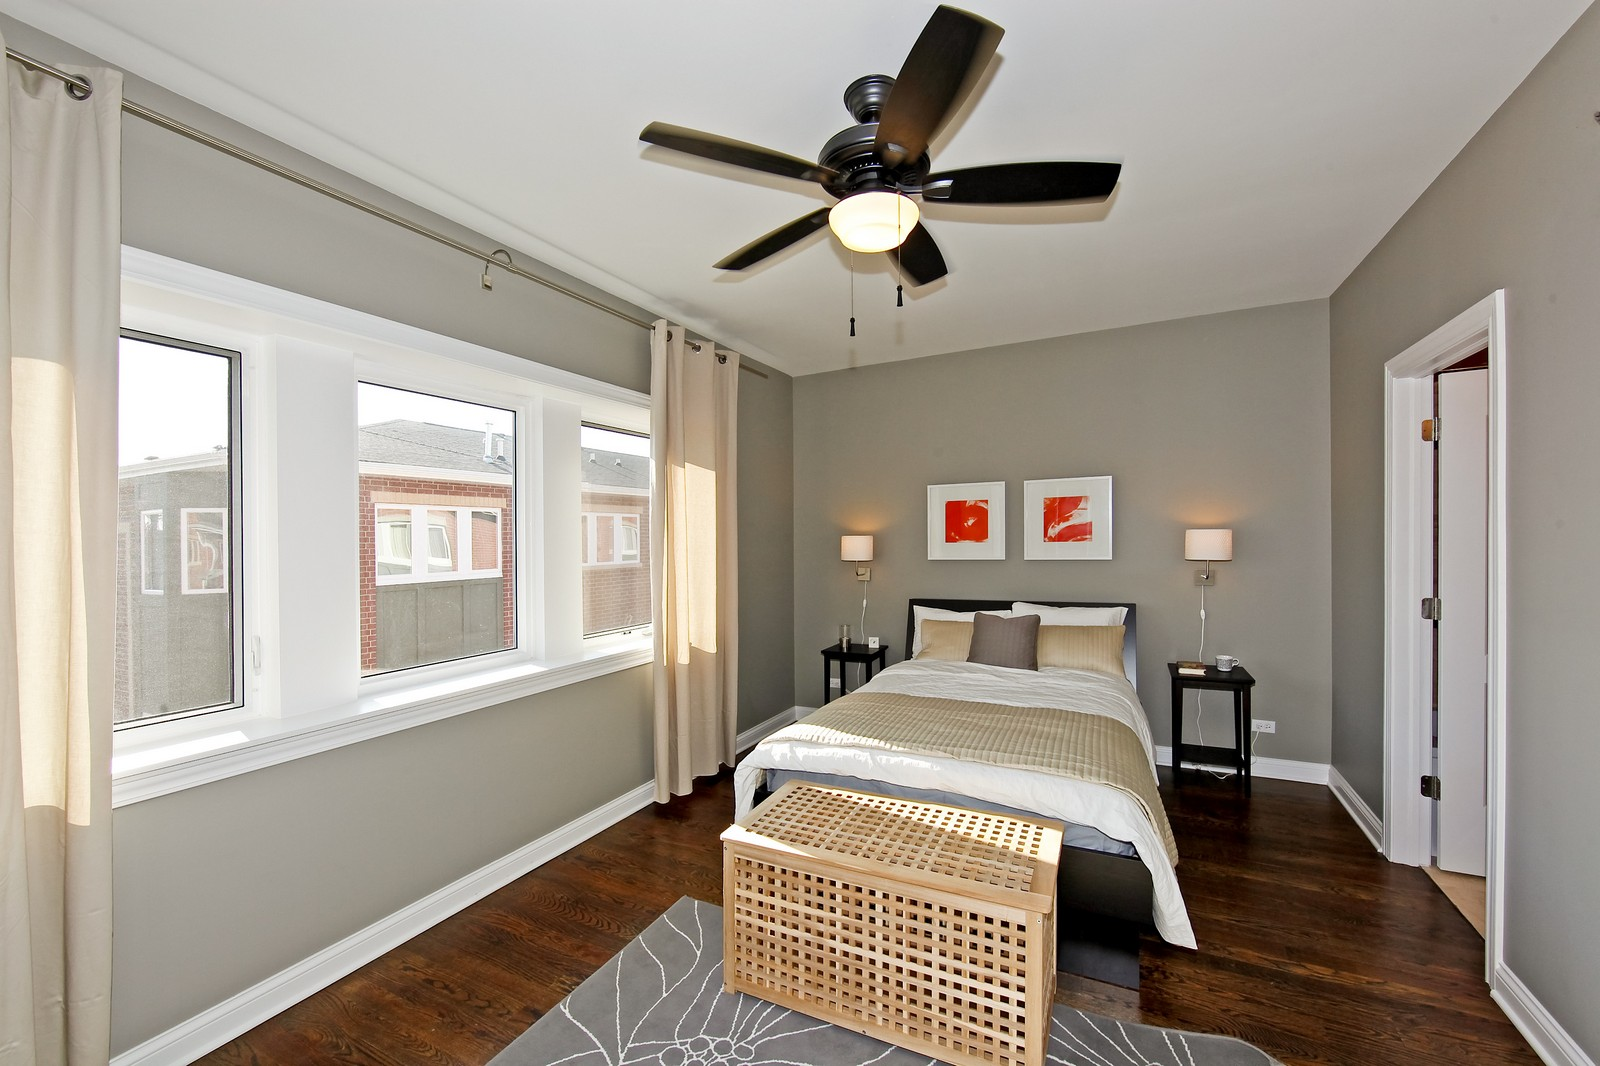 Real Estate Photography - 2422 W Bross, Chicago, IL, 60608 - Master Bedroom